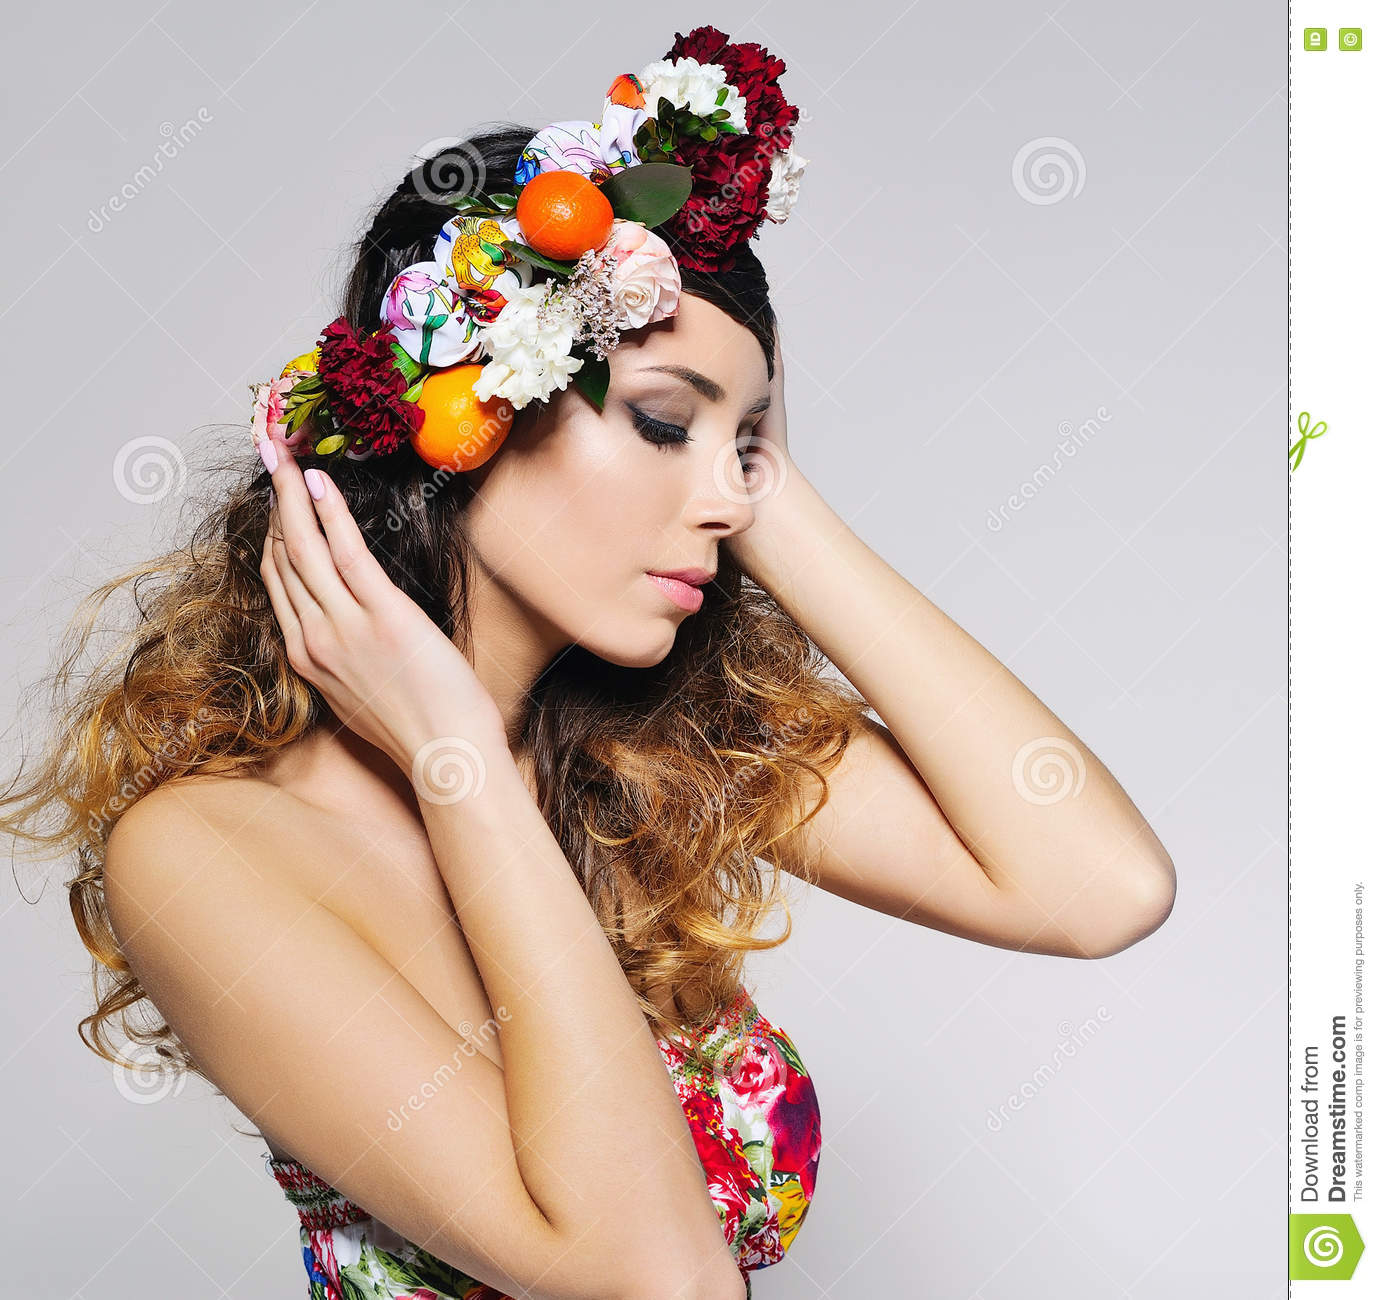 Beautiful Woman Portrait In Handmade Flower Crown Stock Photo